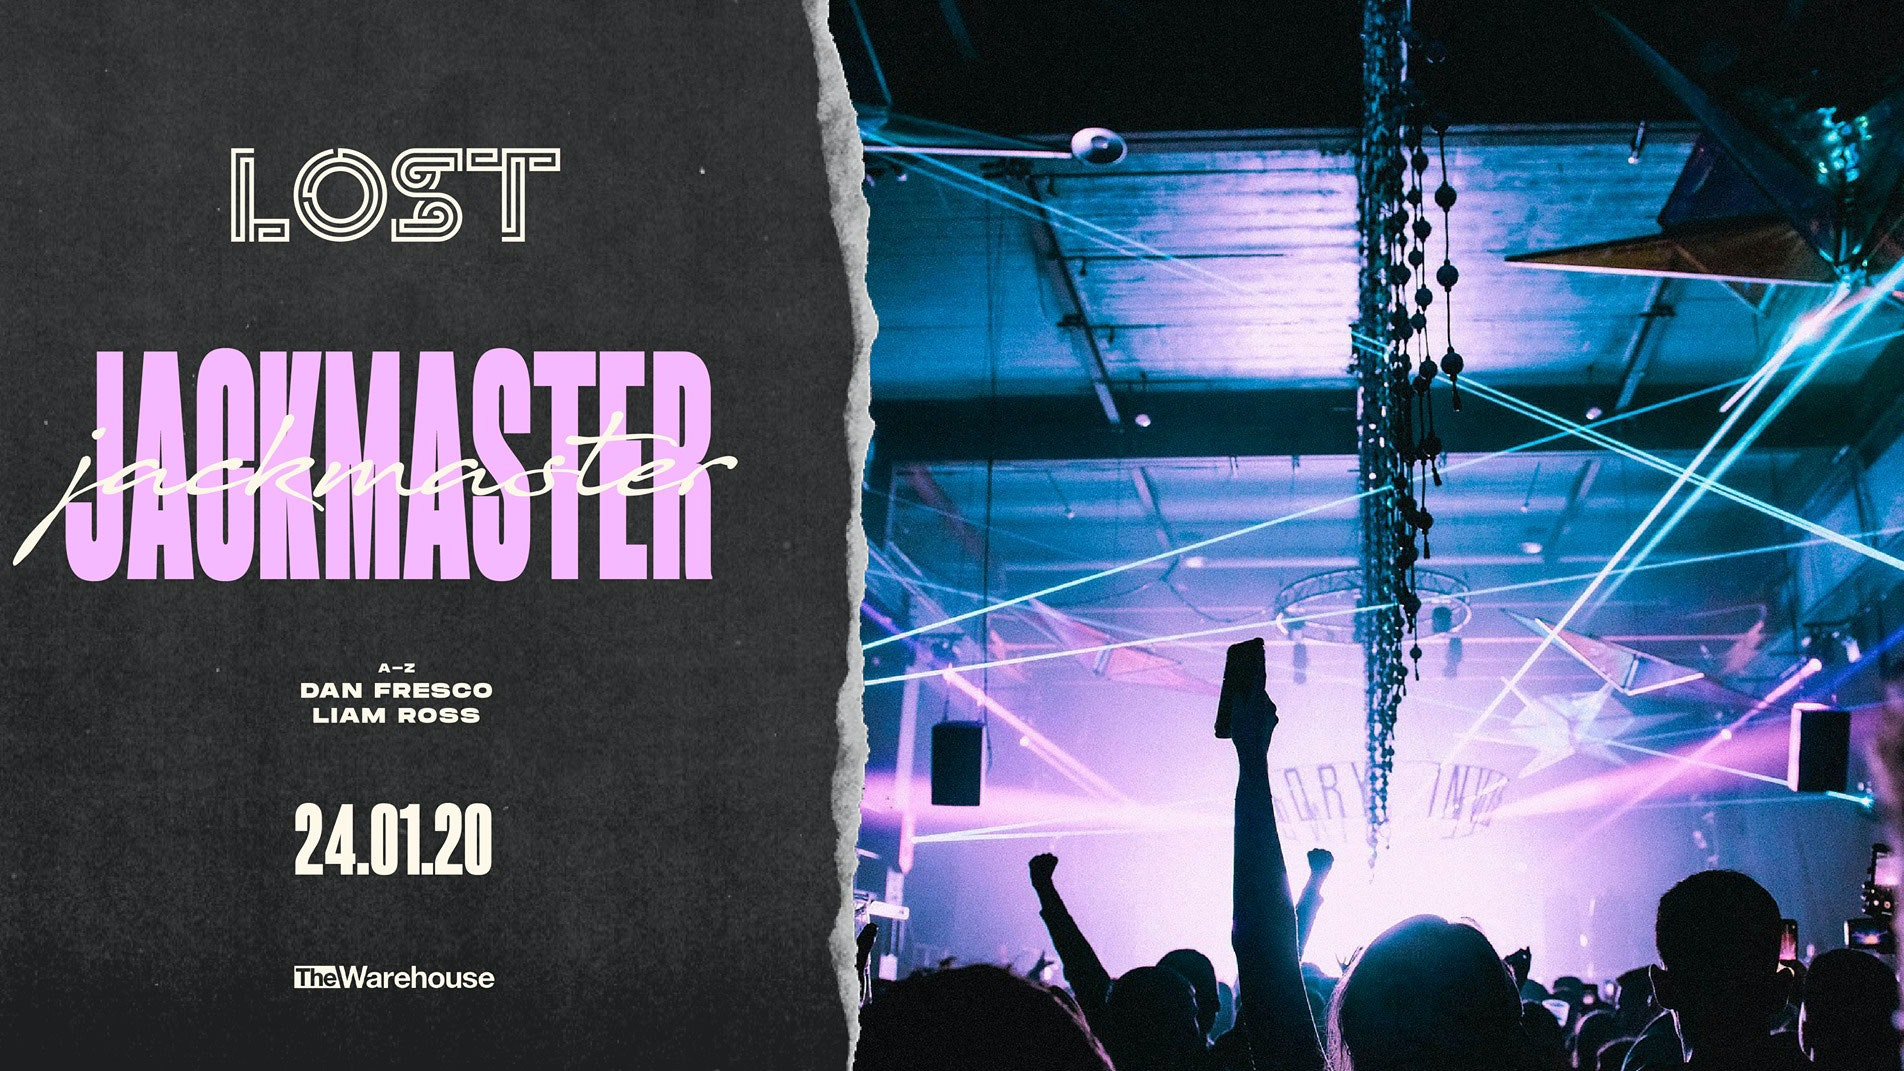 LOST w/ Jackmaster : The Warehouse : Fri 24th jan